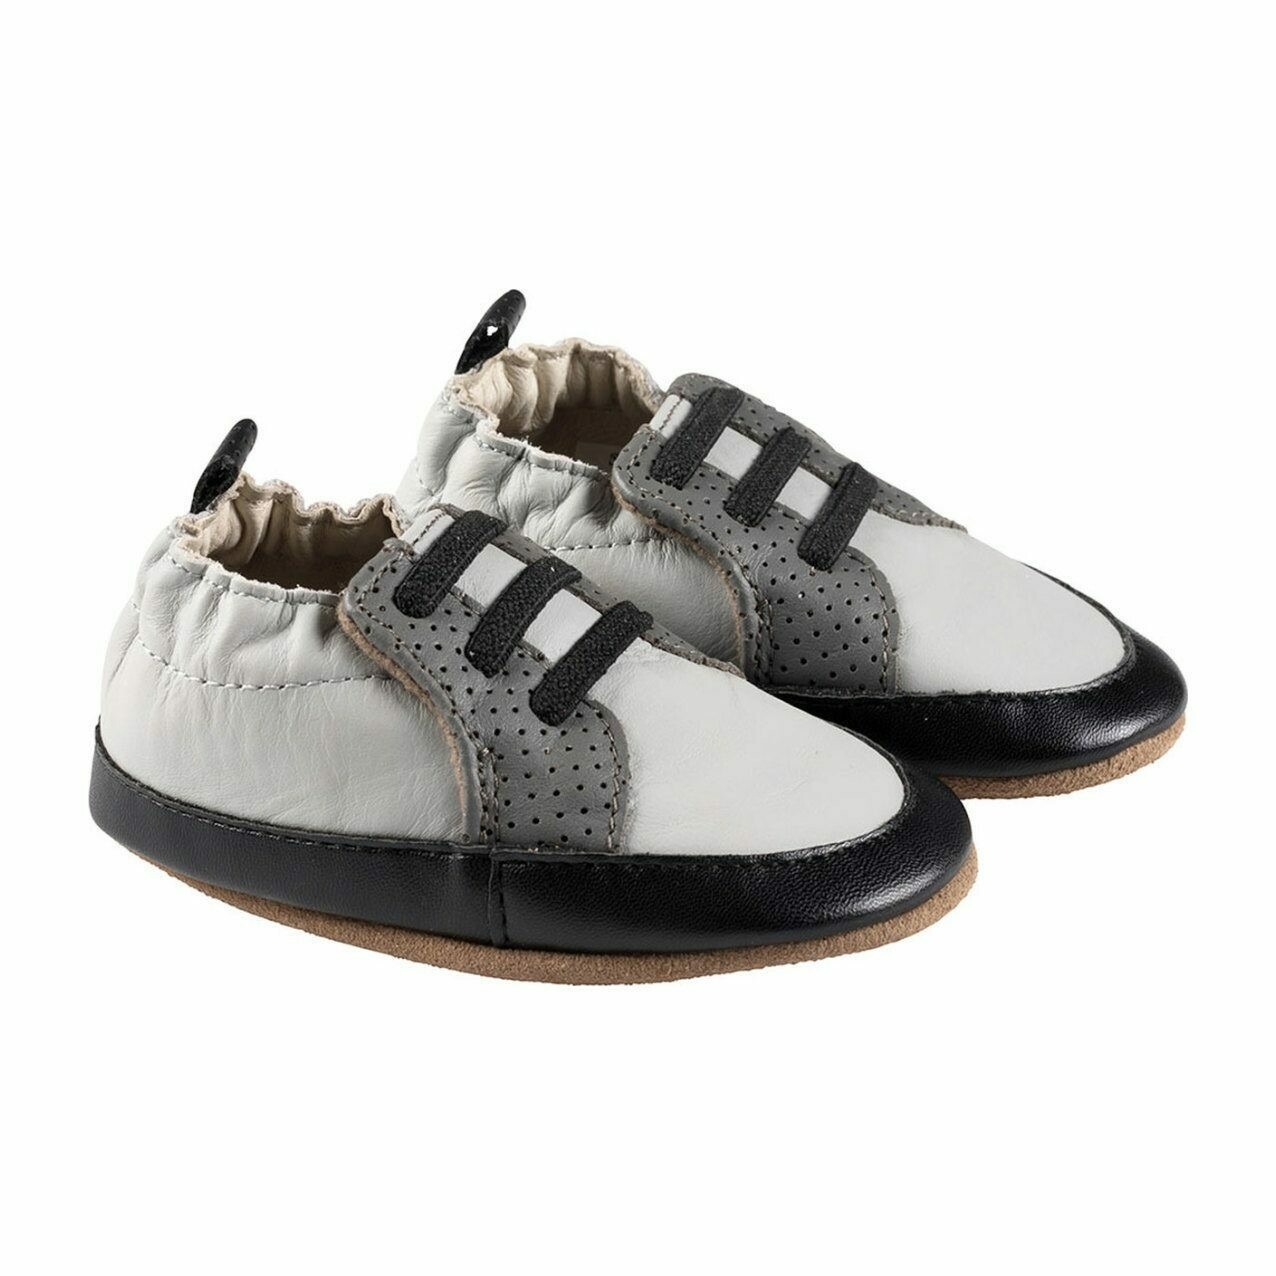 Robeez Trendy trainer grey 6-12